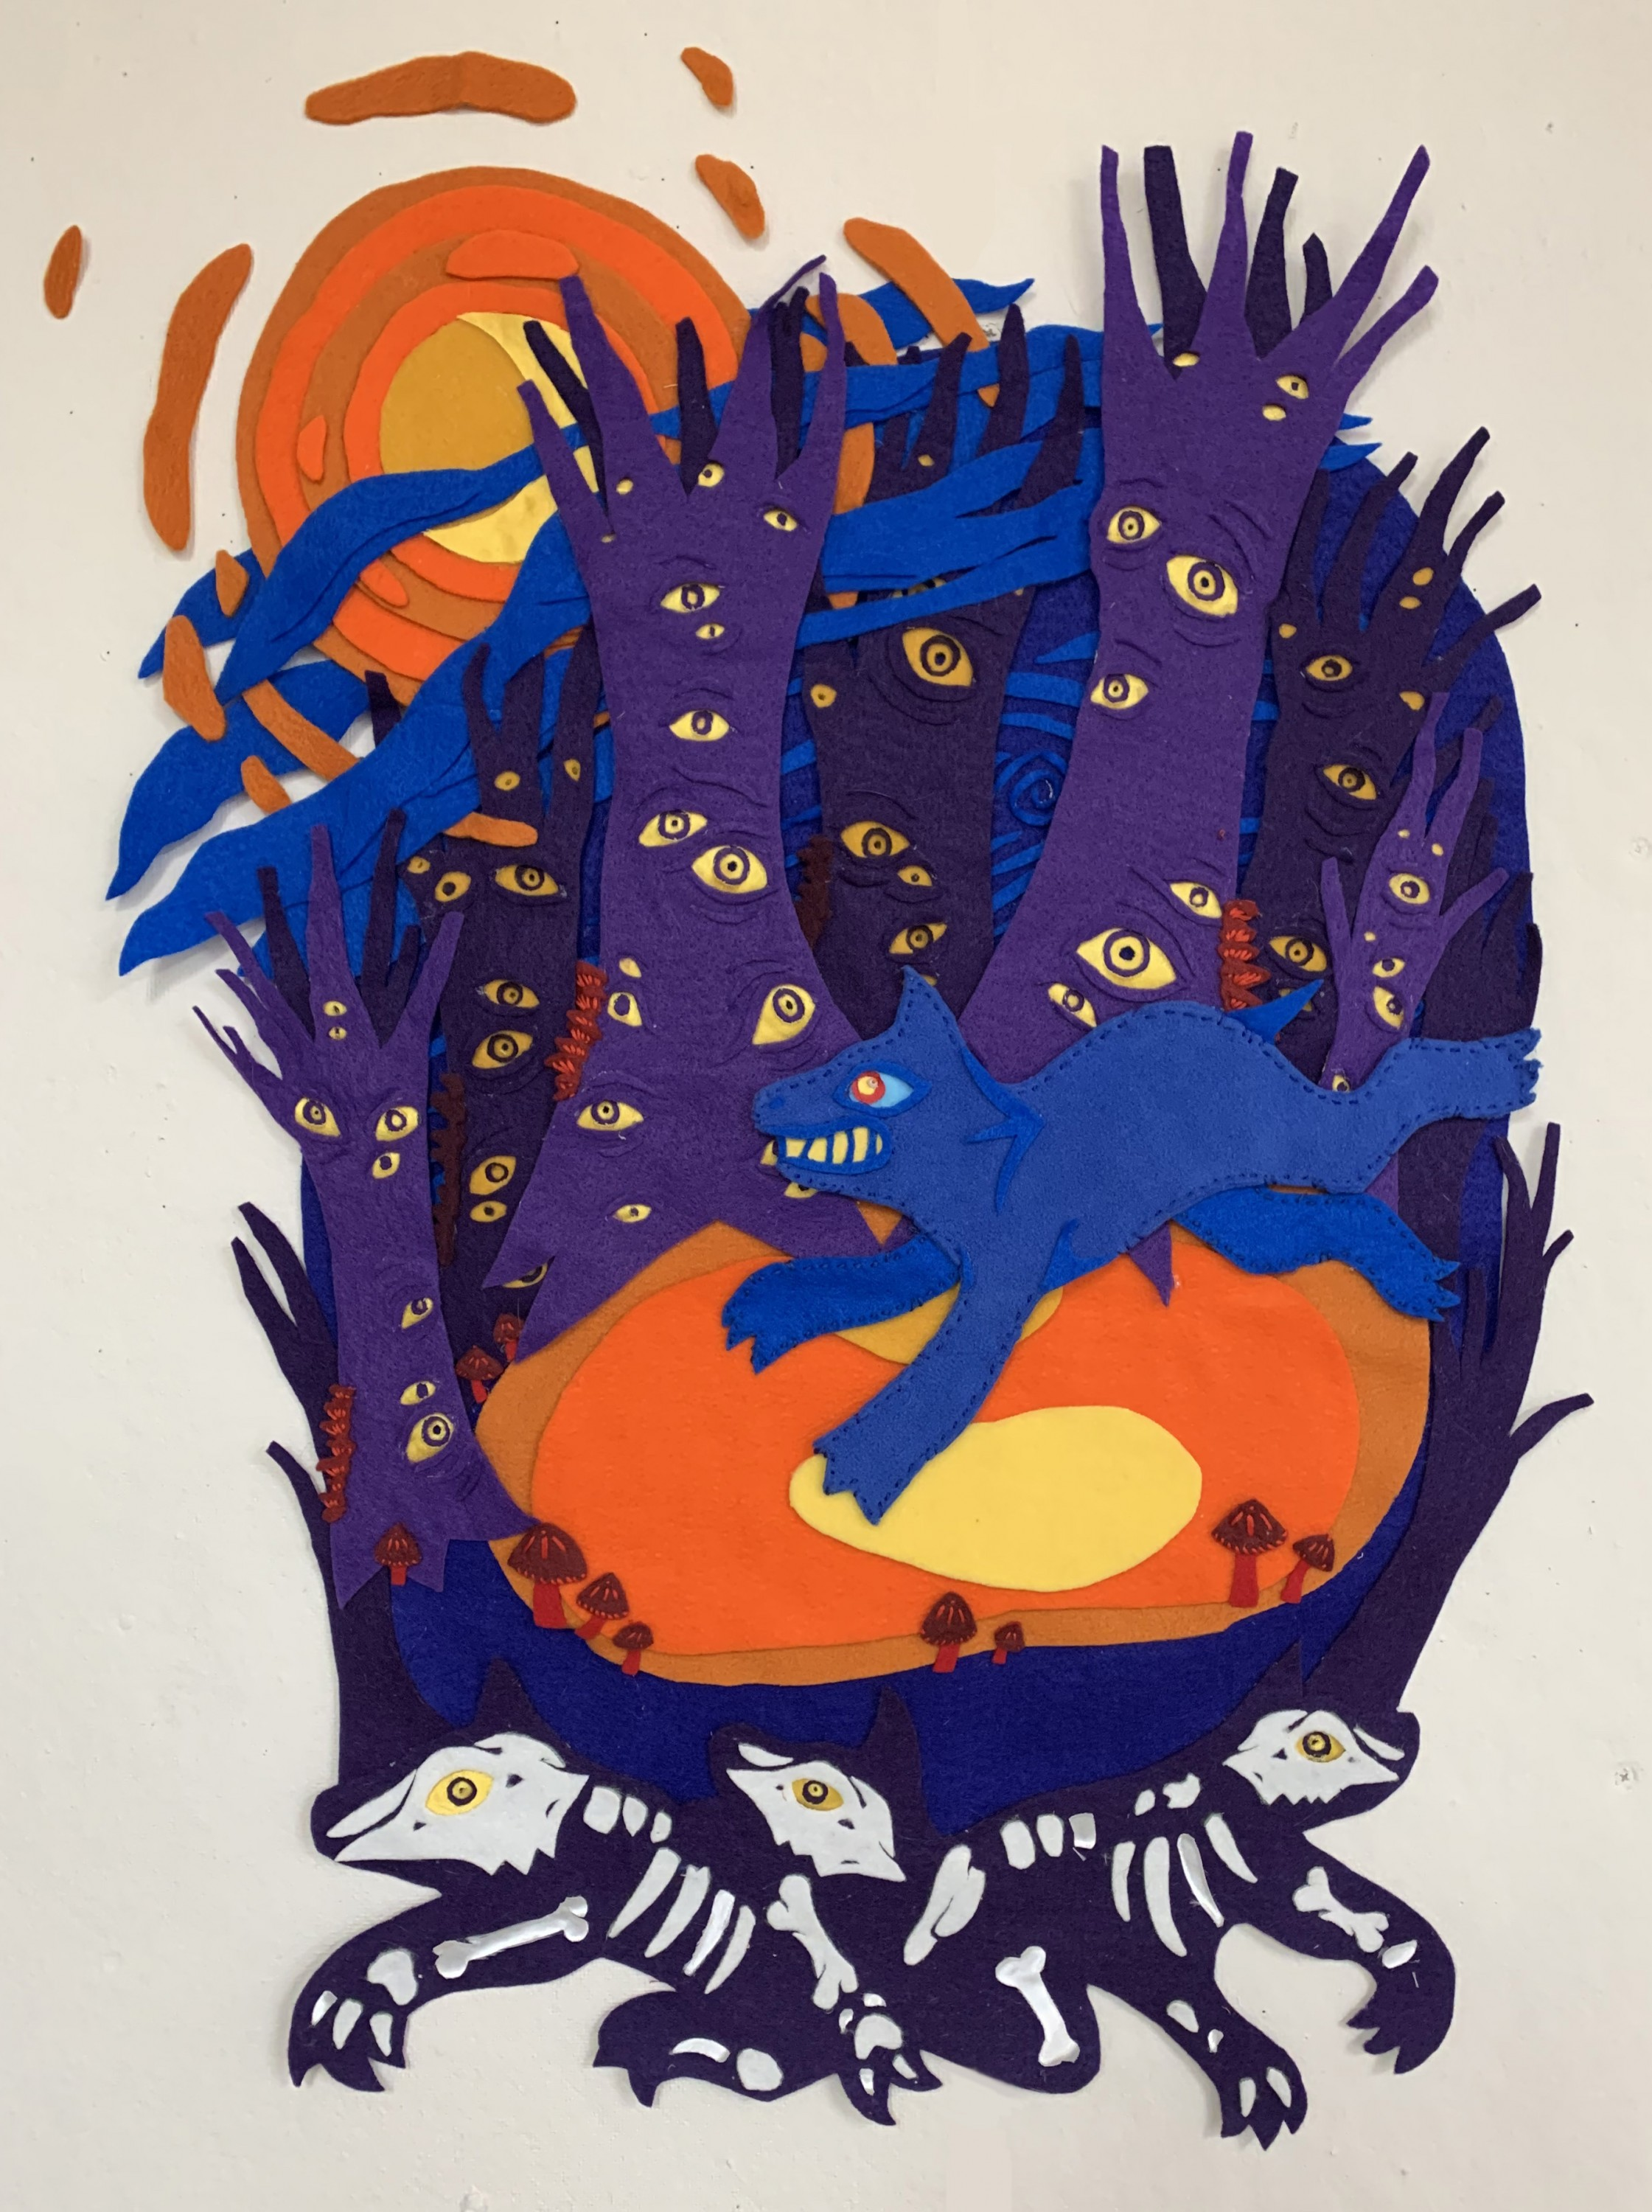 There is a bright blue dog running through a forest of dark purple trees resting on a bright orange ground. The trees are covered in golden yellow eyes that follow you when viewing the piece. Below the orange ground there are several skeleton dogs with ye